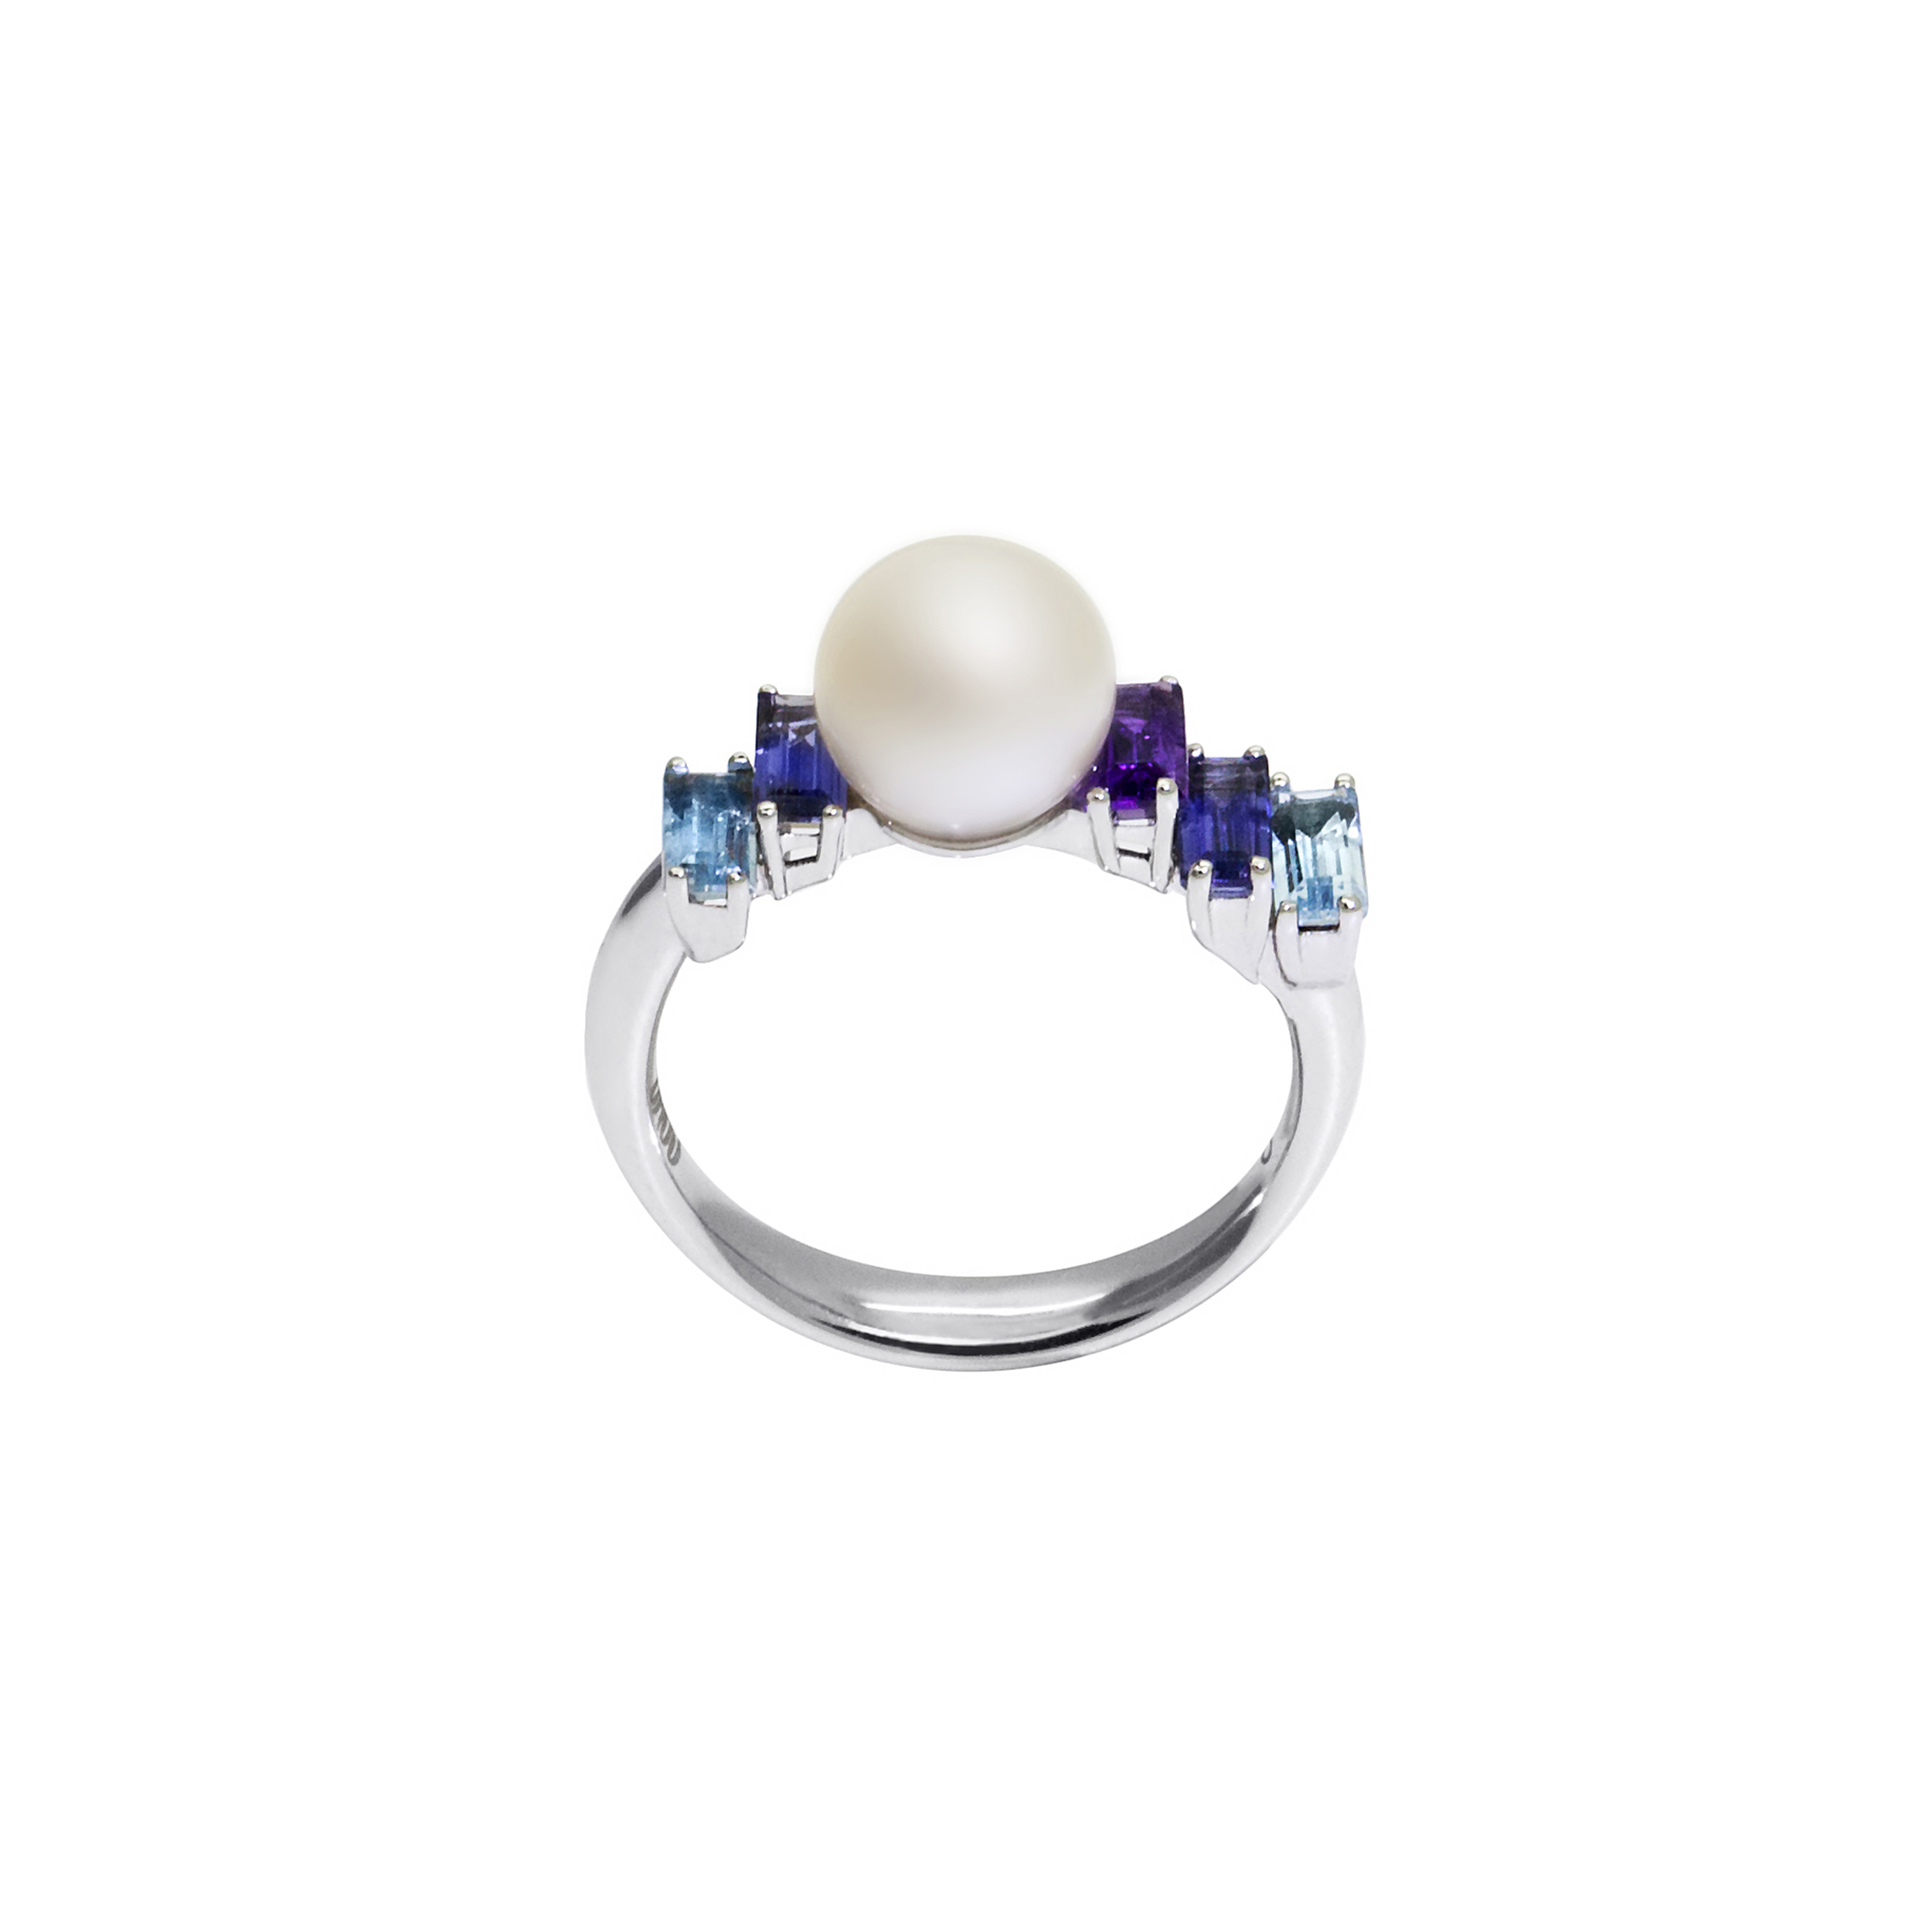 Pearl Morning Light Ring Daou Jewellery £1560 White Gold 18k Pearl and gemstones.jpg